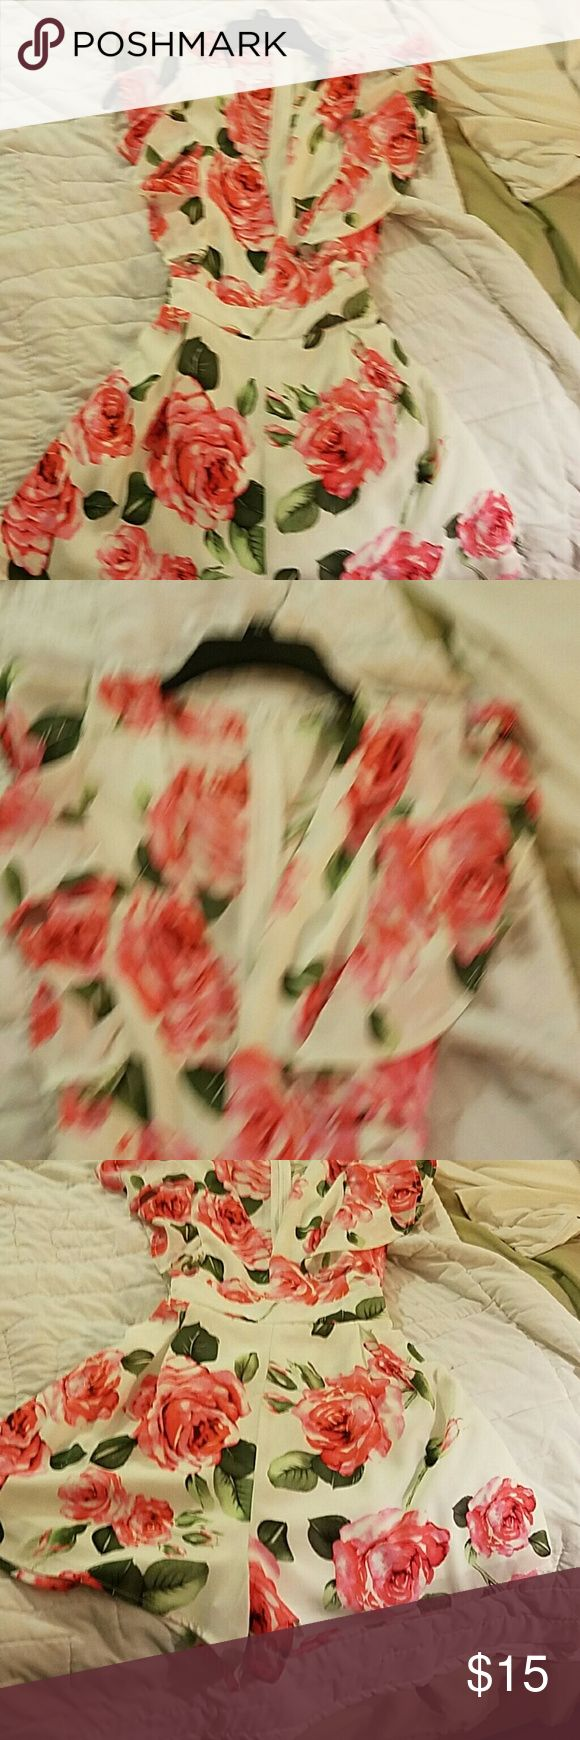 Beautiful Charolette Rouse Rouse Adorable cream romper with pink roses and a deep v neck in the front. Cute cap sleeves and it ties in the back. Charlotte Russe Shorts